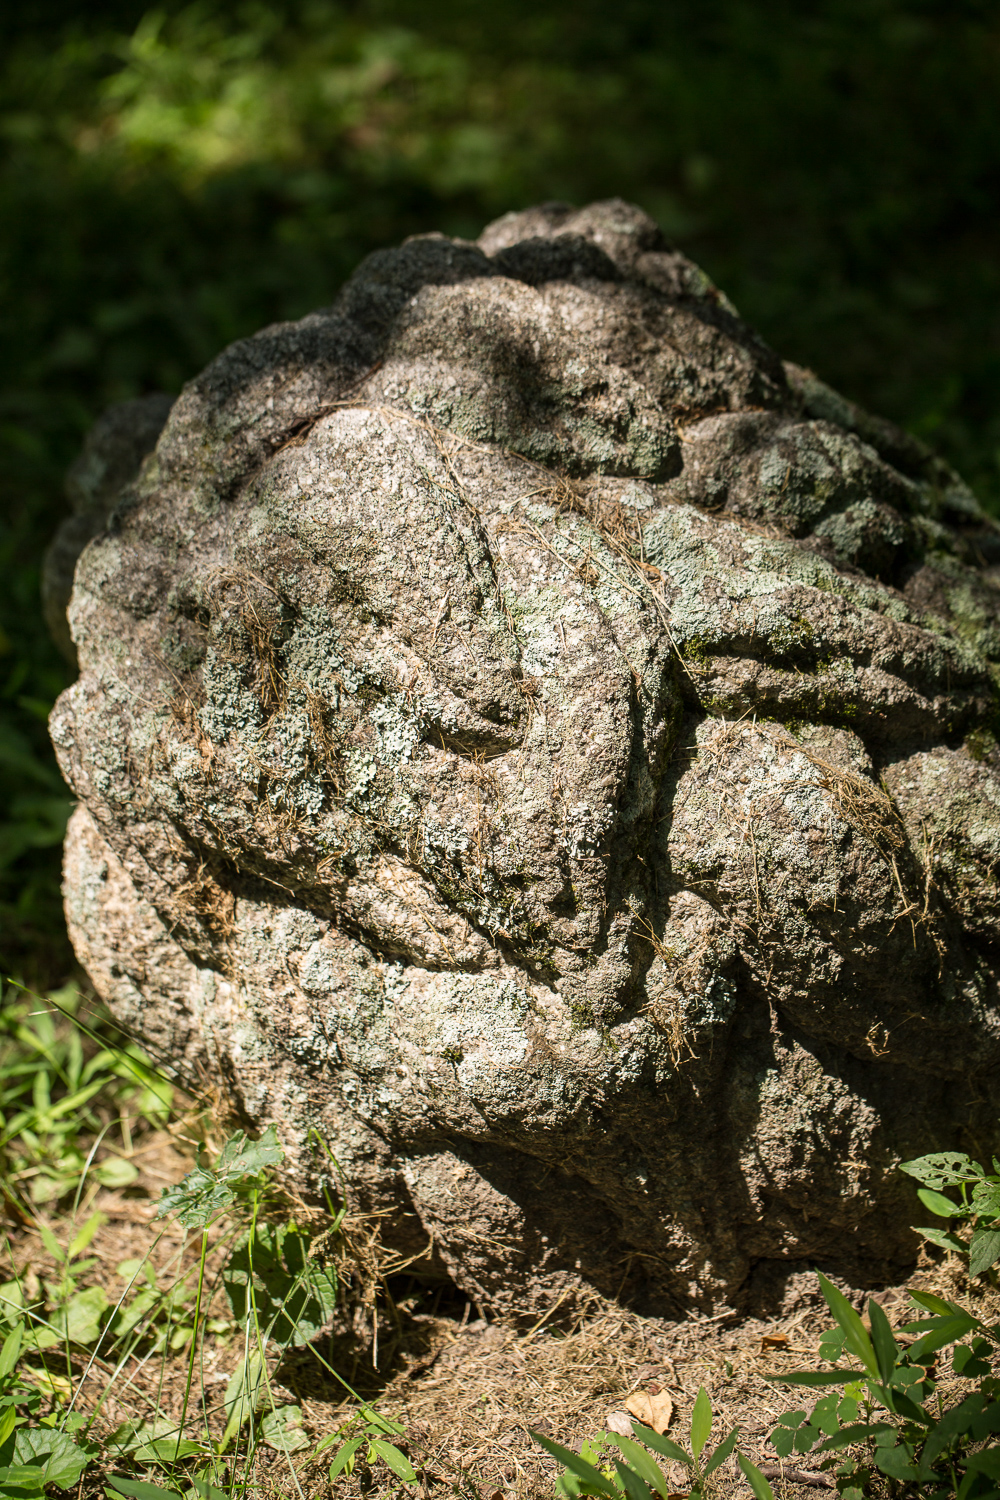 japanese sculpture, japanese antique, japanese antique sculpture. garden sculpture, japanese garden sculpture, japanese garden, lion sculpture, antique lion sculpture, stone lion, japanese lion